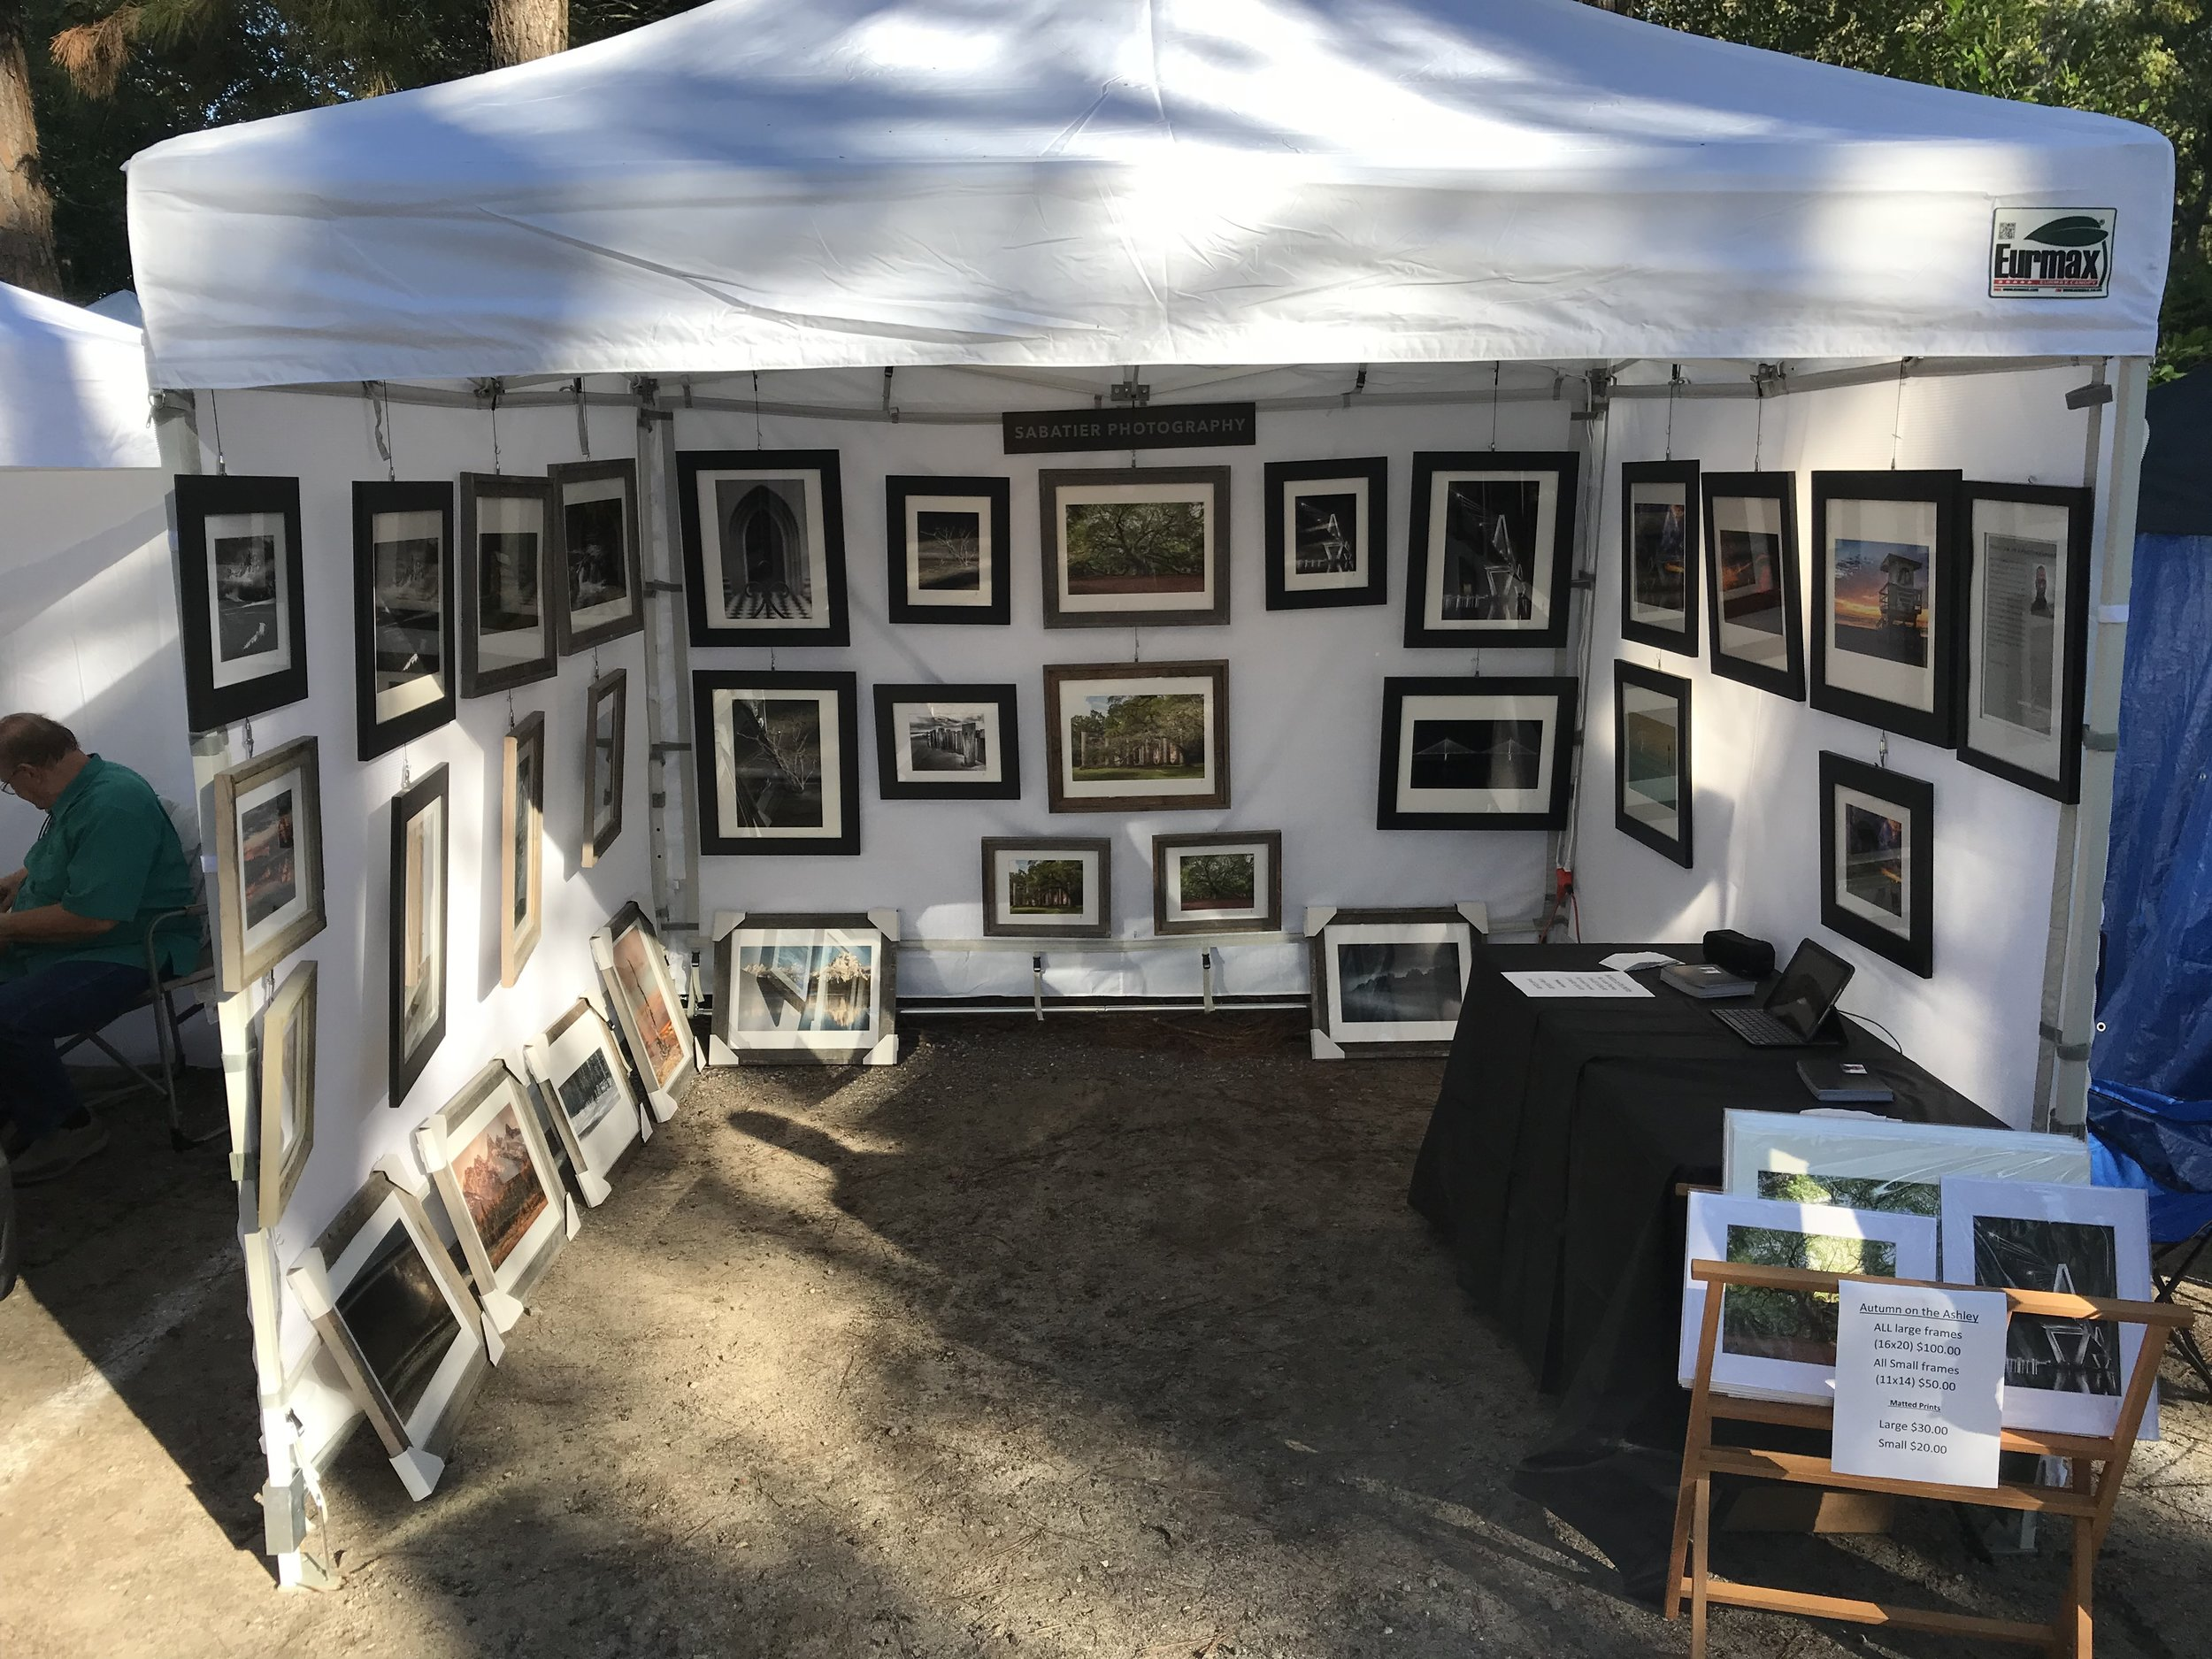 Here's the tent and walls set up along with the art work hung up. Man, is that a lot of art or what?